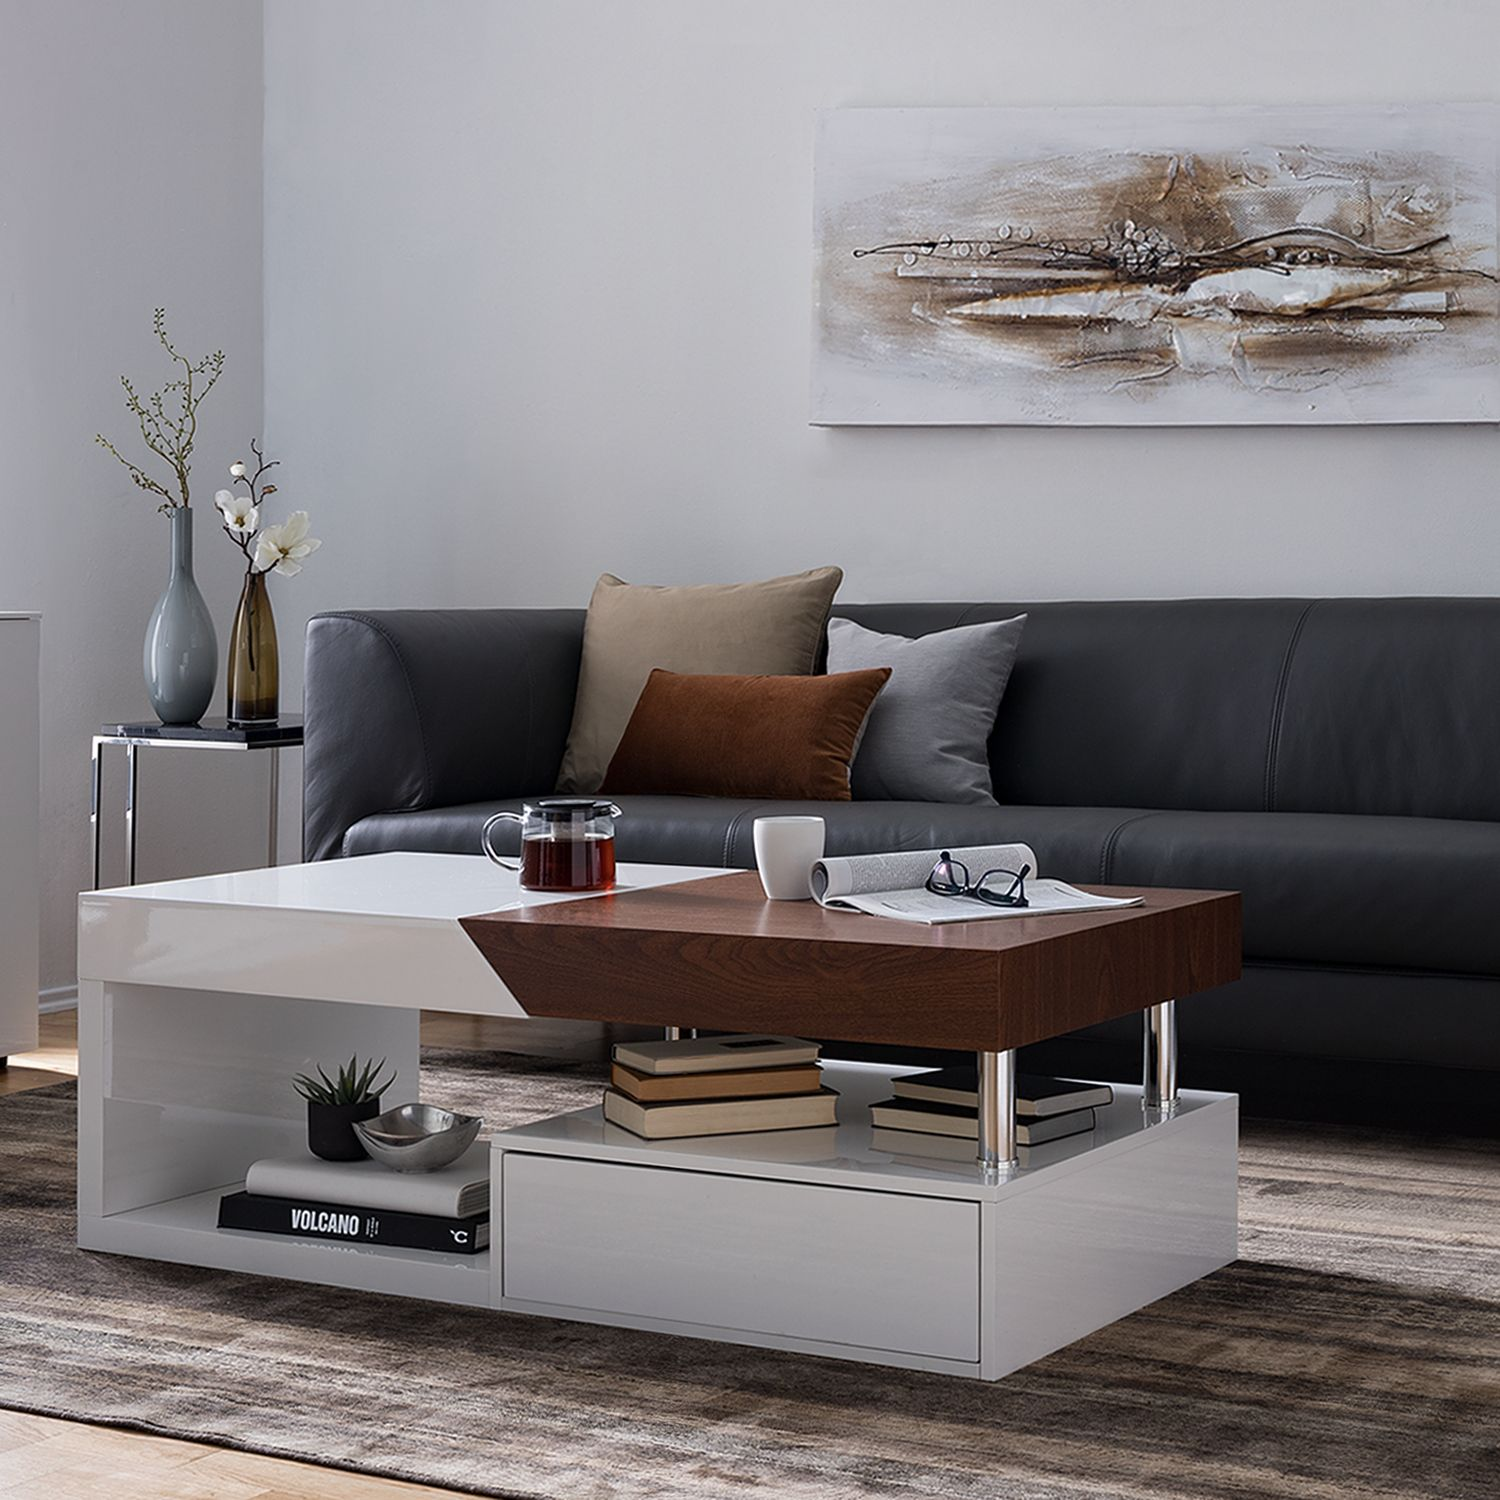 Fredriks Couchtisch Two Colour Informations: Fredriks Table Basse Renwer